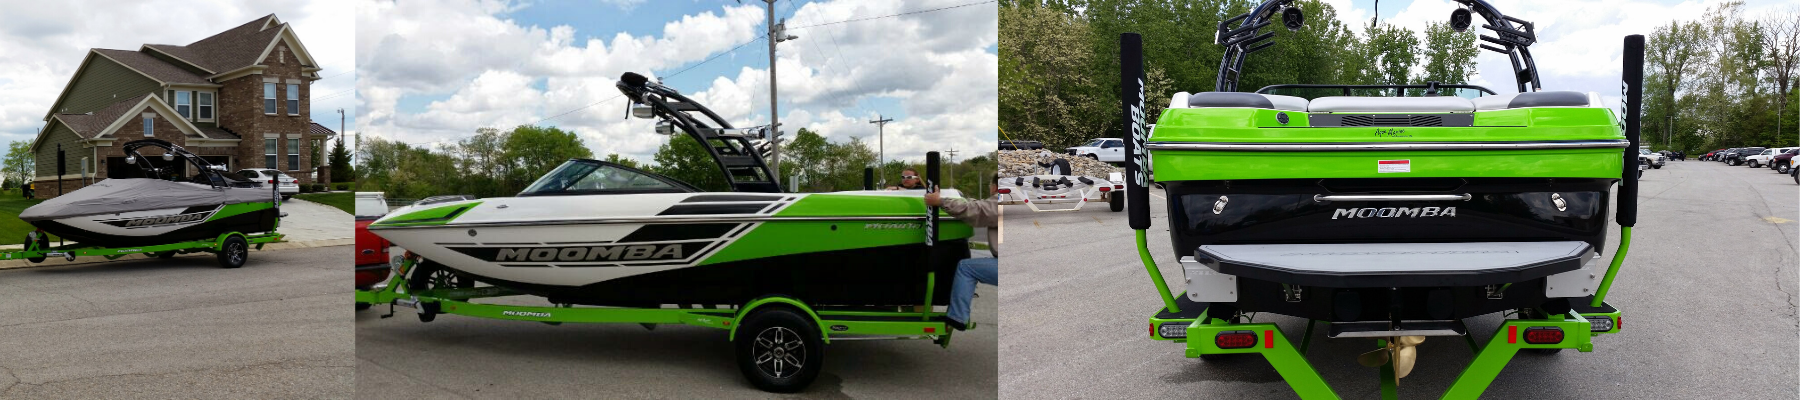 Green and black 2014 Moomba Mondo